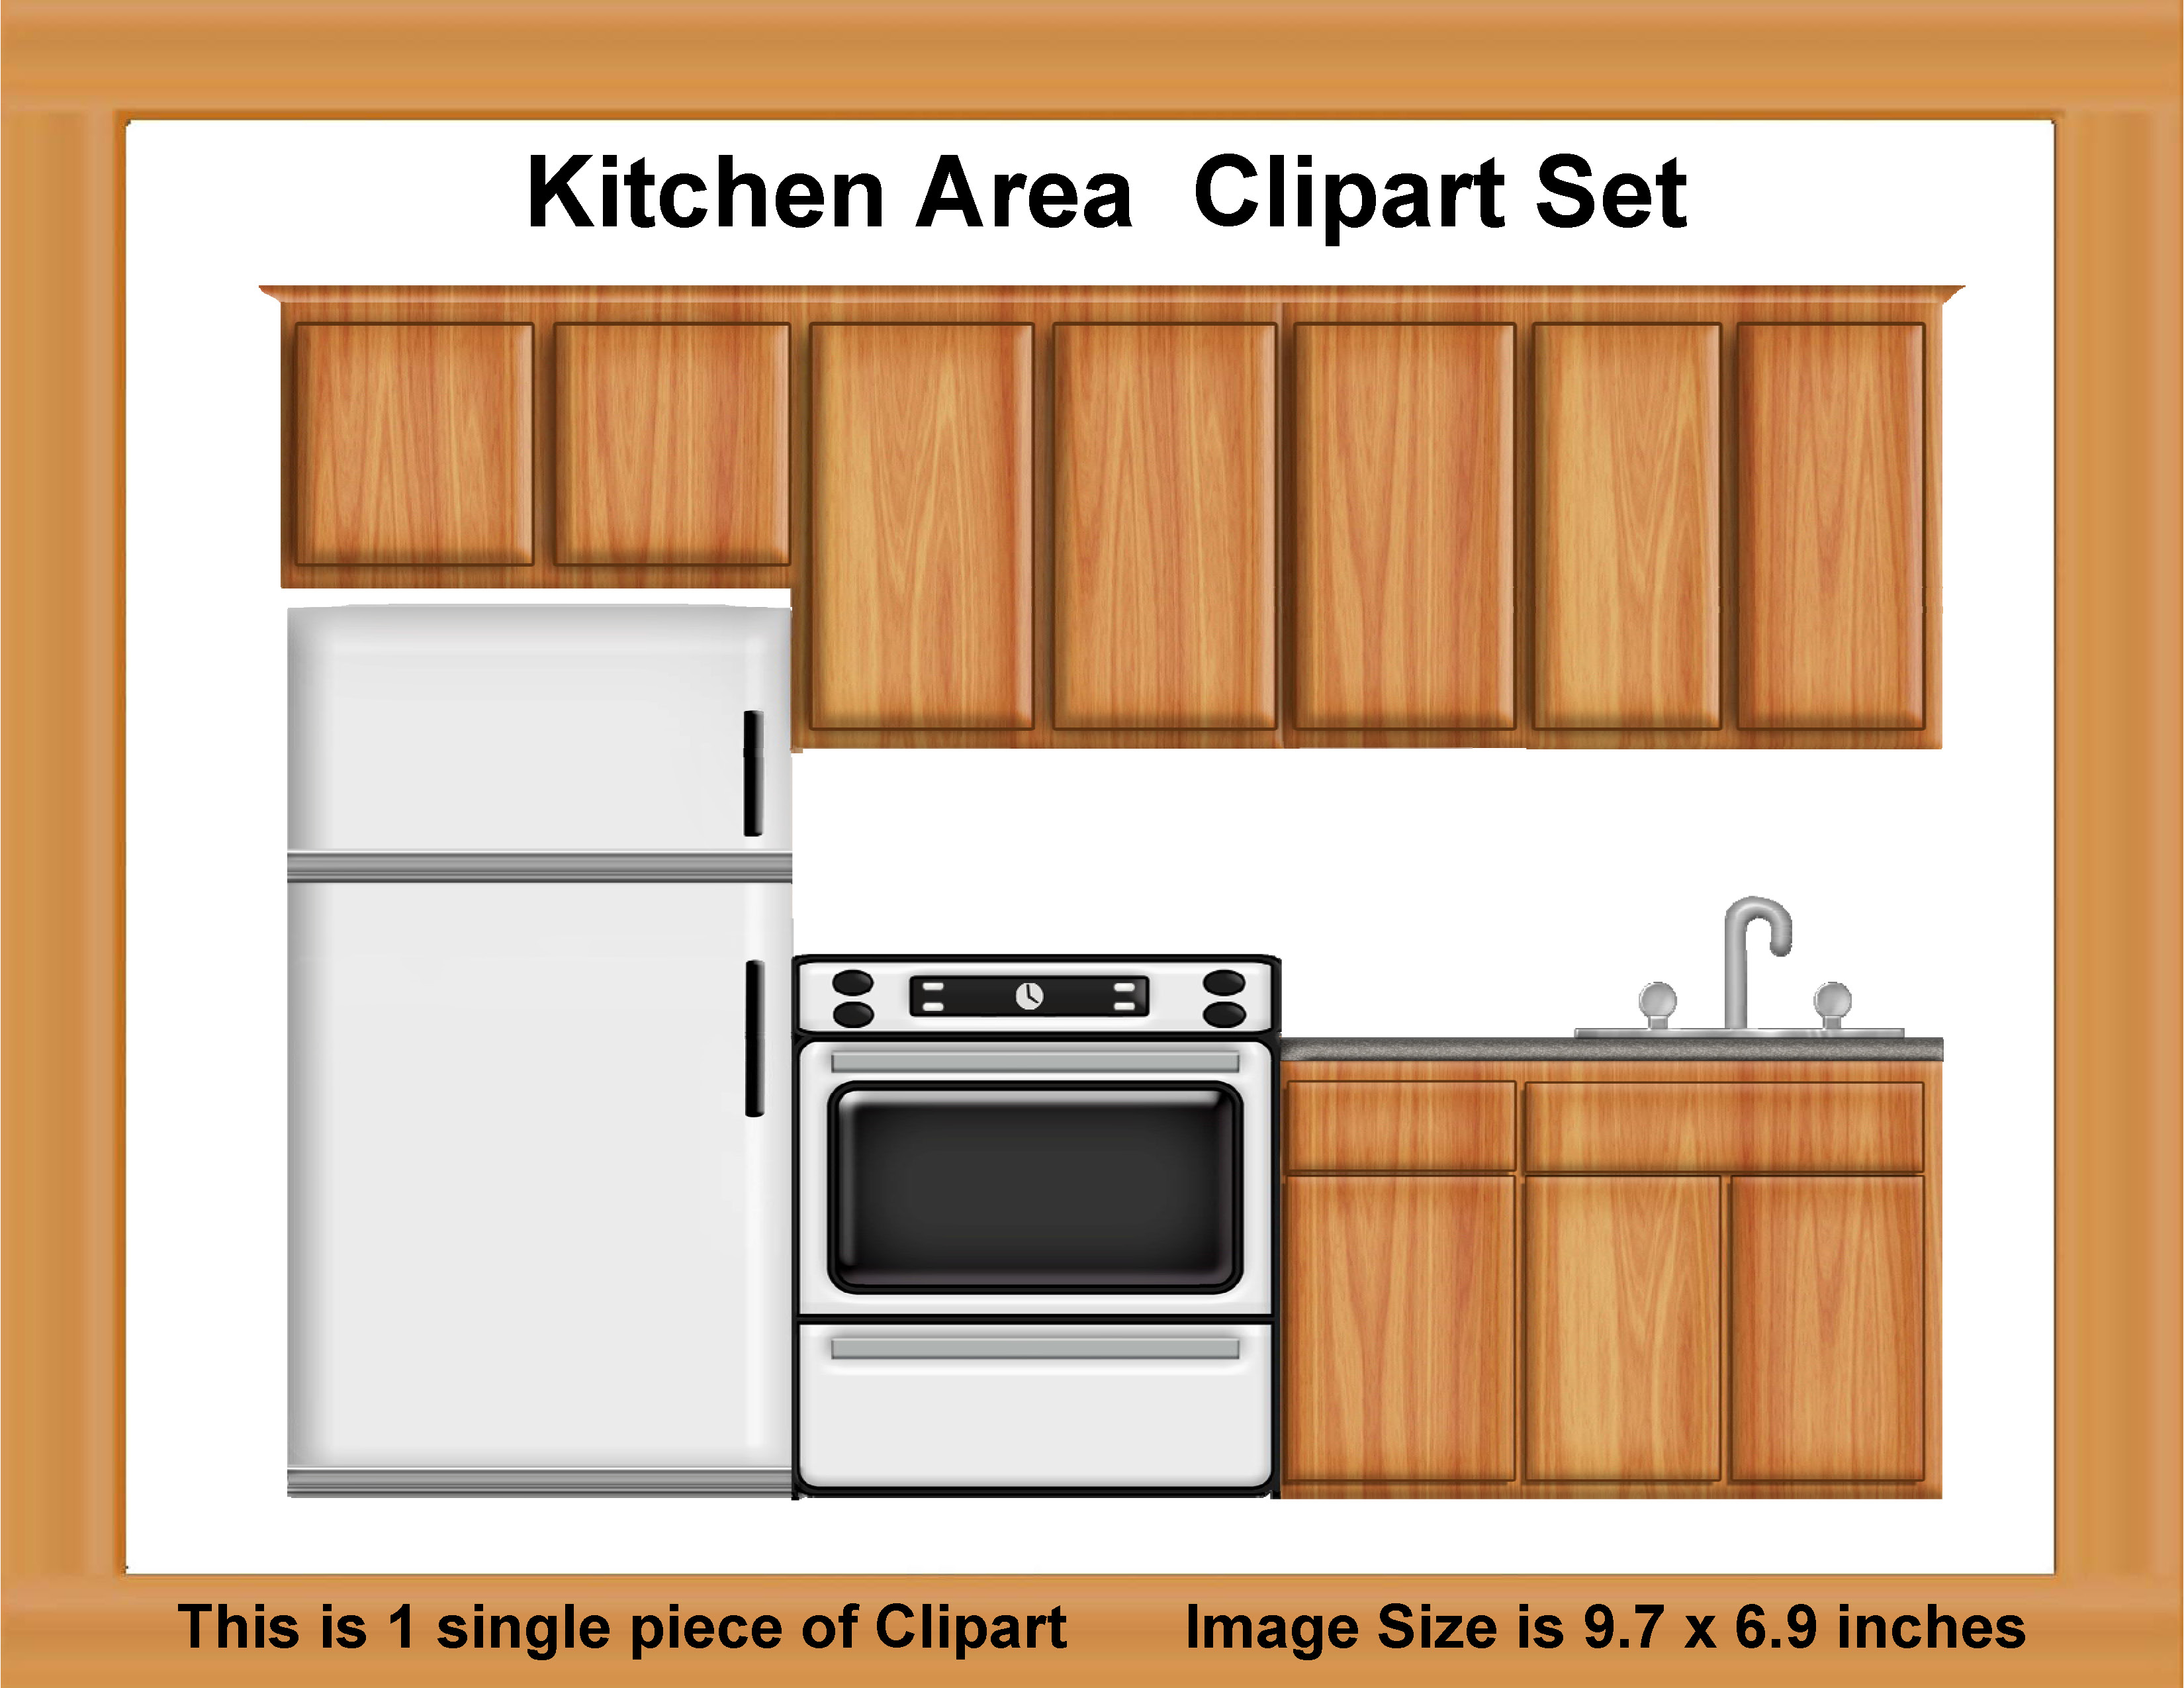 Oven clipart kitchen furniture. Cabinet pencil and in